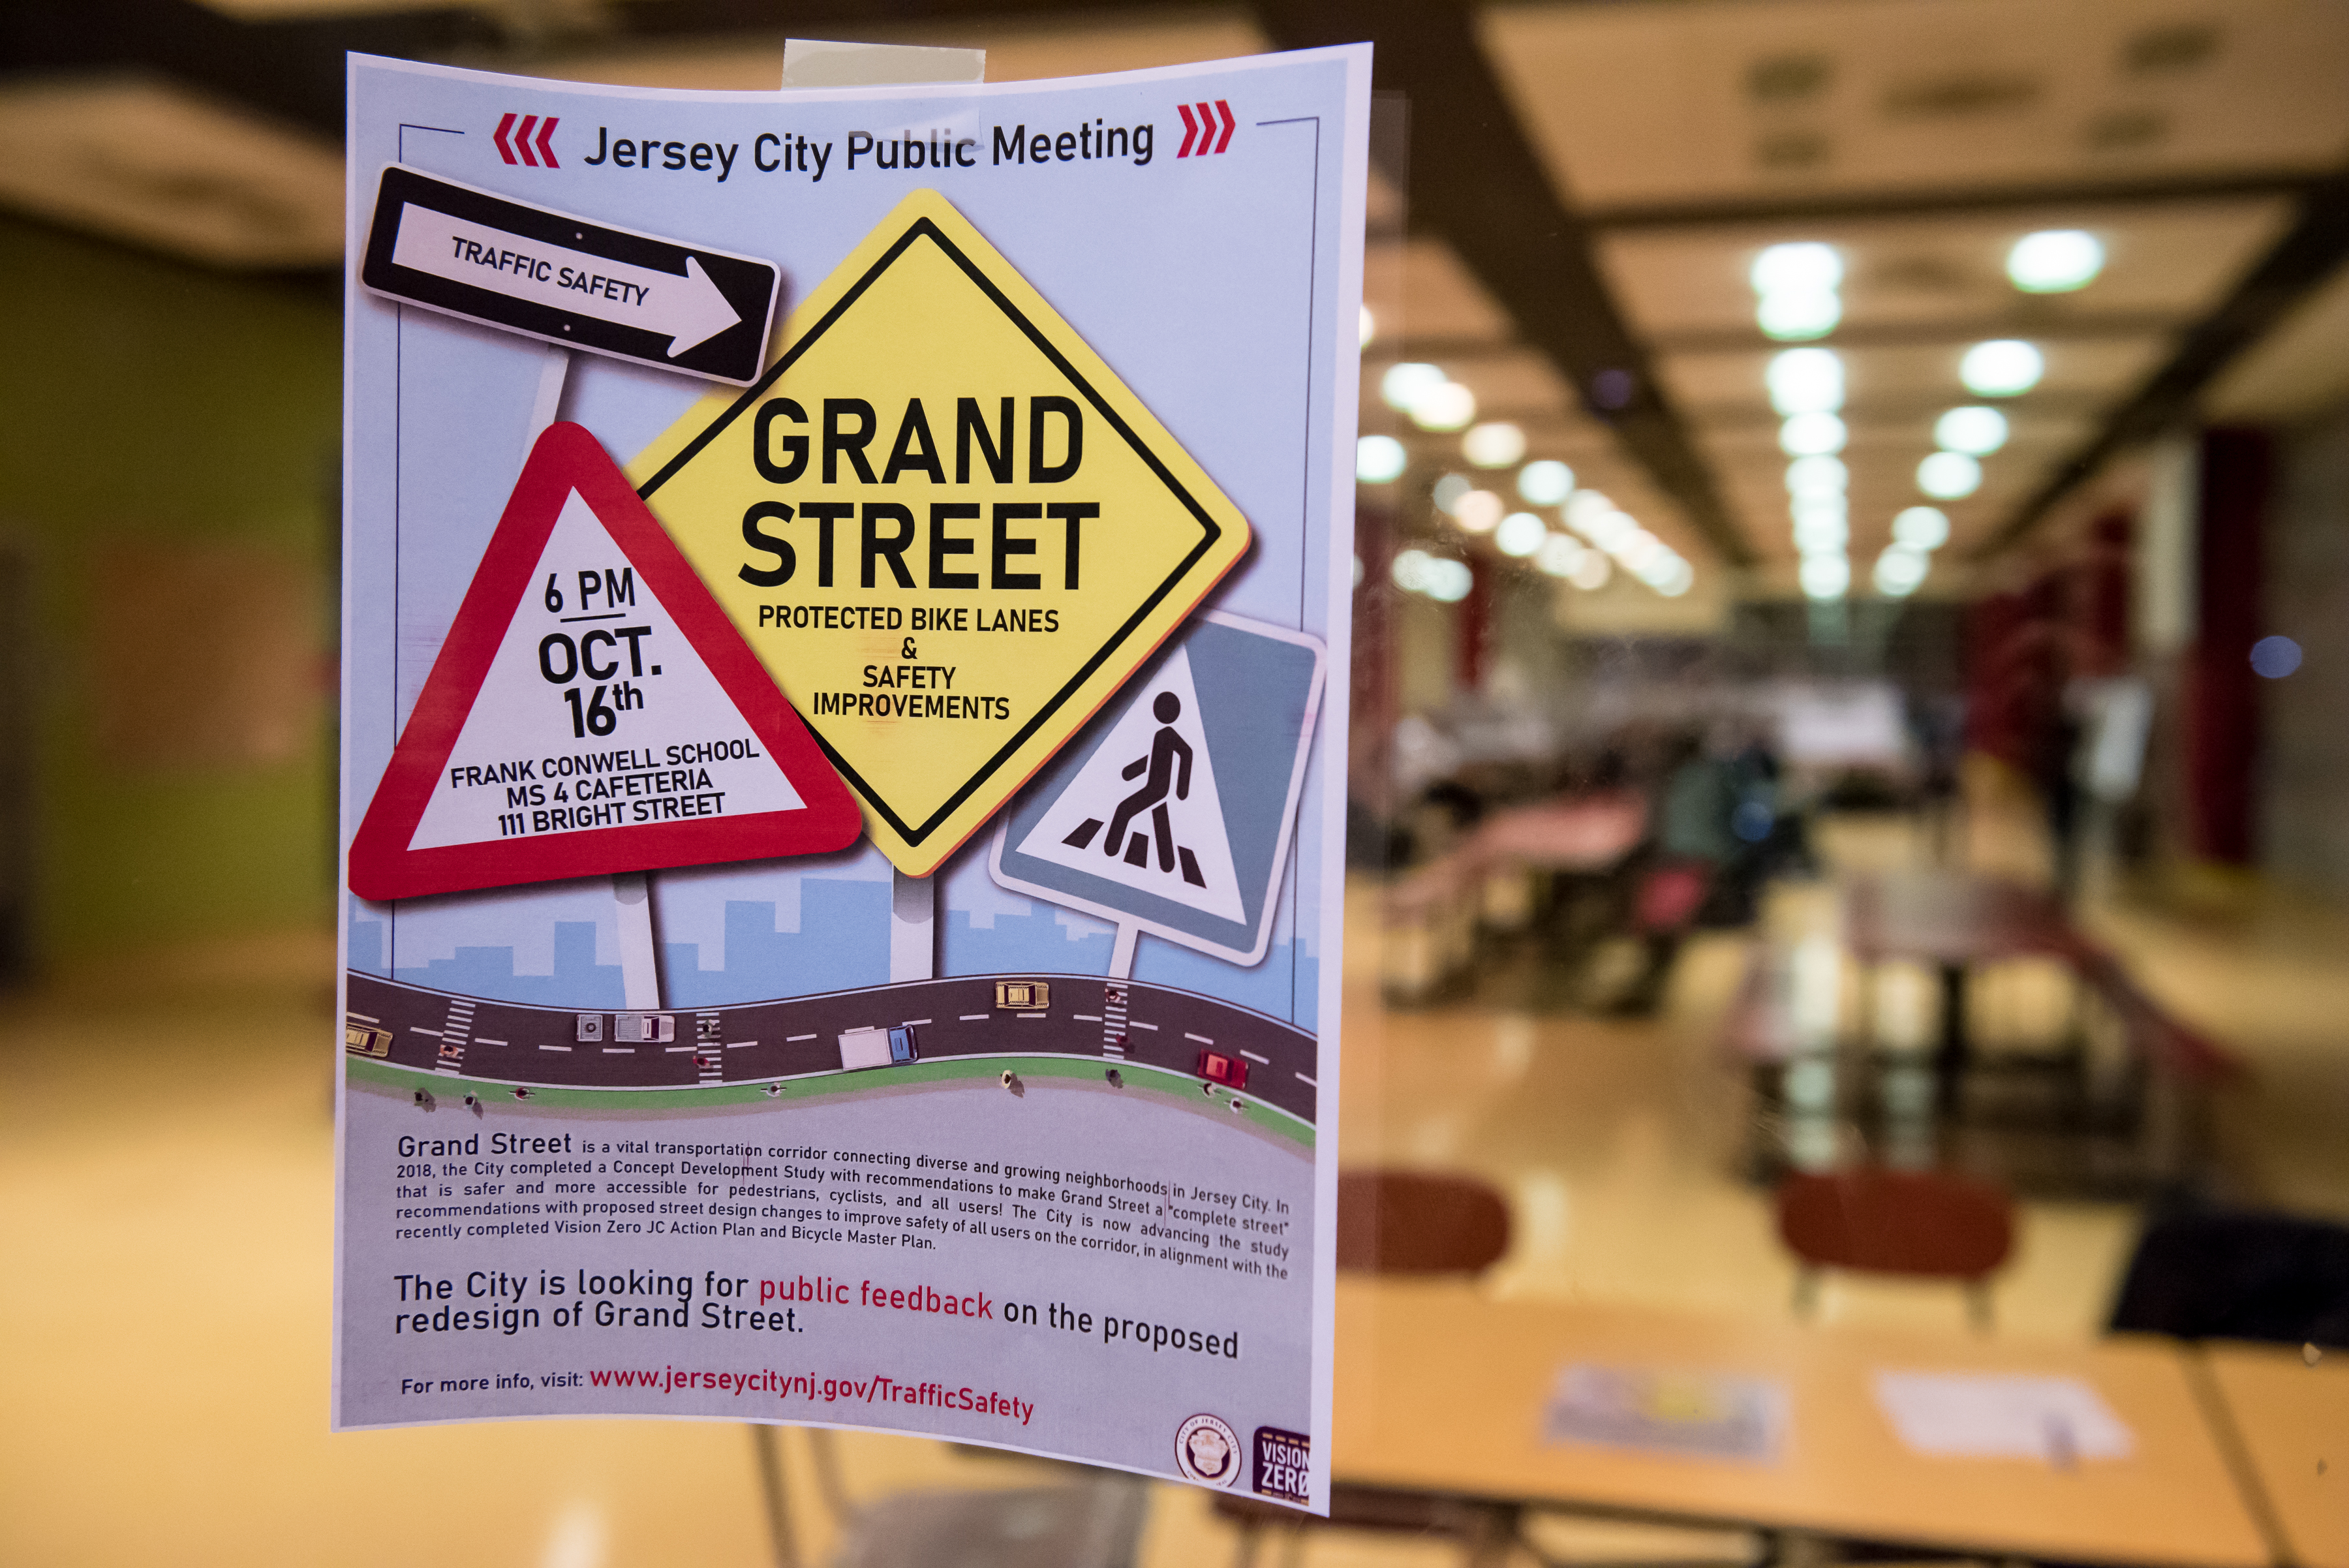 Jersey City unveils plans for protected bike lanes on Grand Street